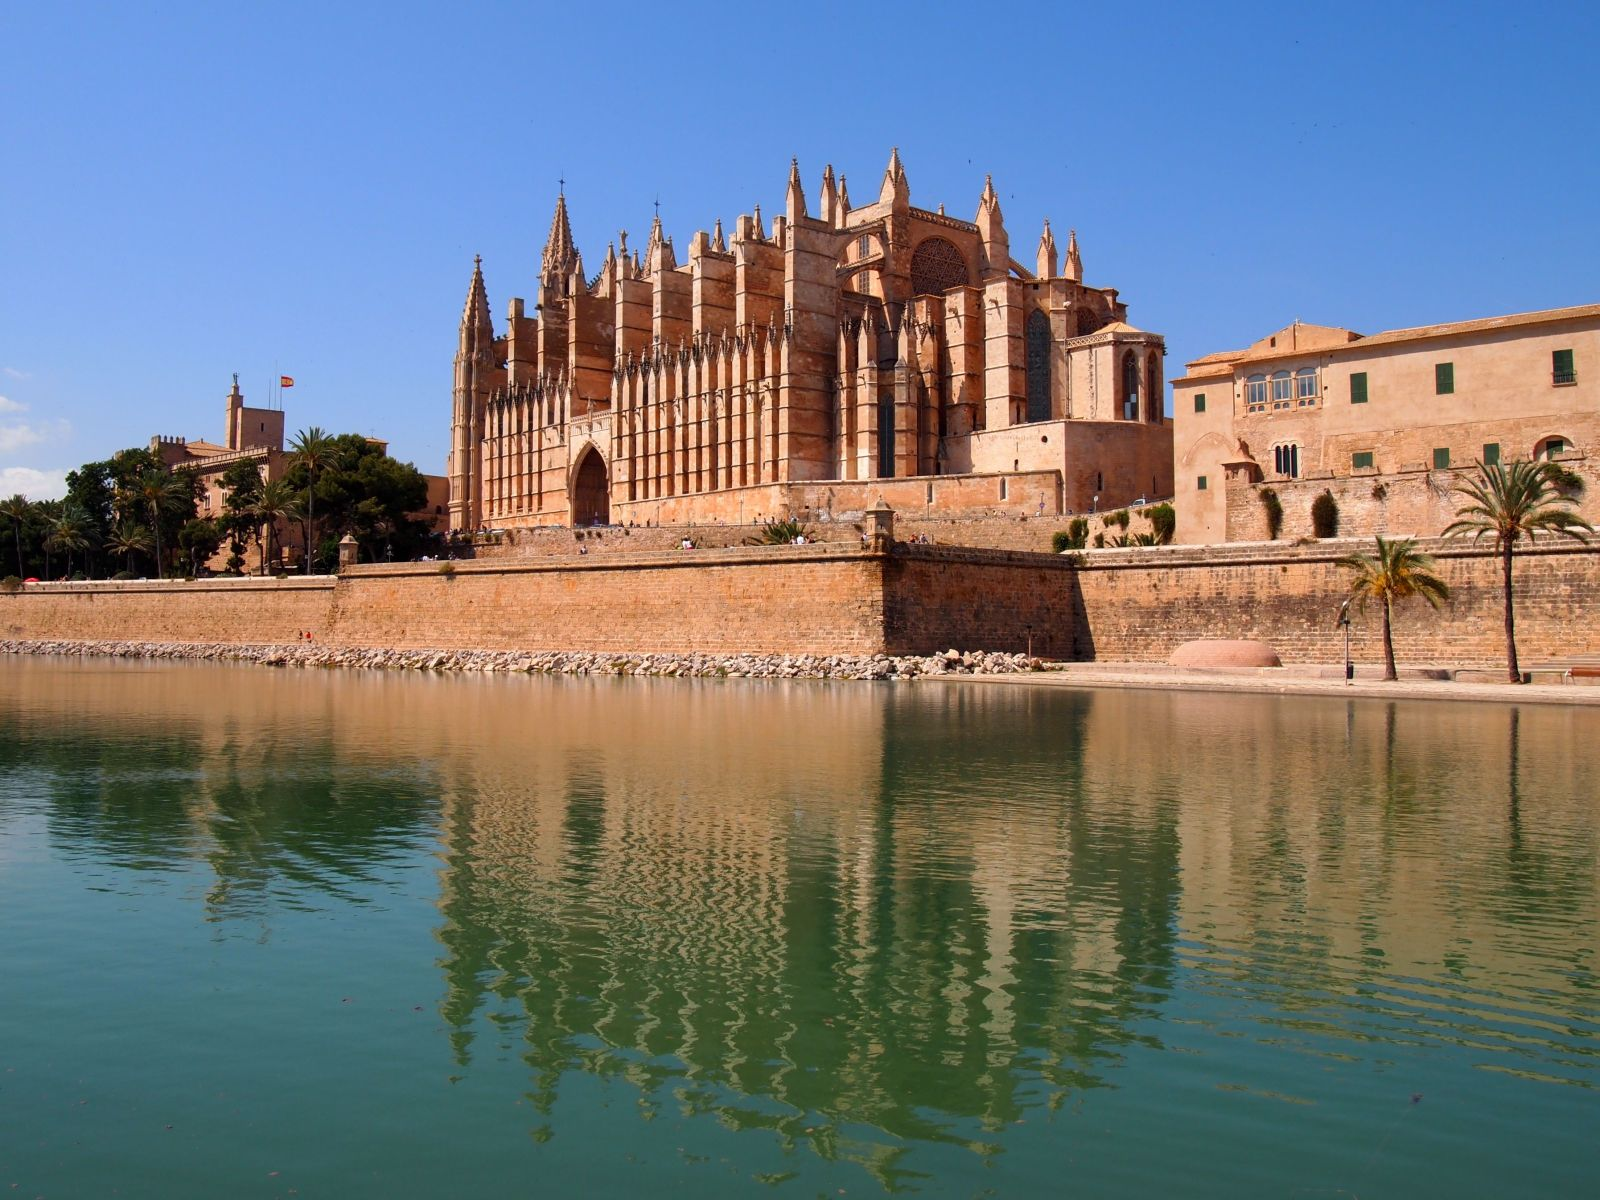 Club MAC Alcudia image of Palma Cathedral